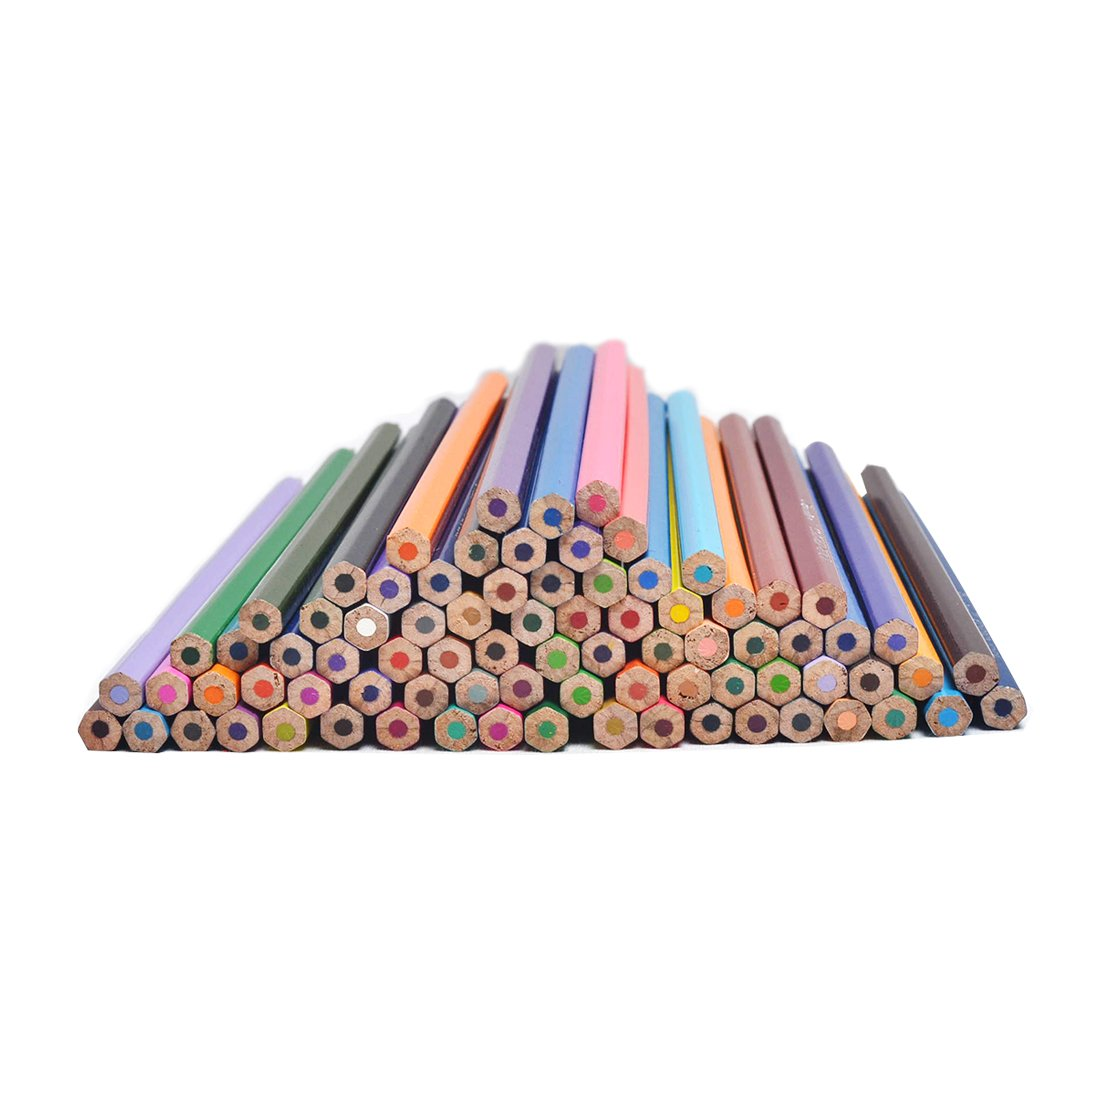 CYPER TOP 80-color Colored Pencils Set For Adults And Kids/Vibrant Colors,Drawing Pencils for Sketch, Arts, Coloring Books (Cylinder) by CYPER TOP (Image #4)